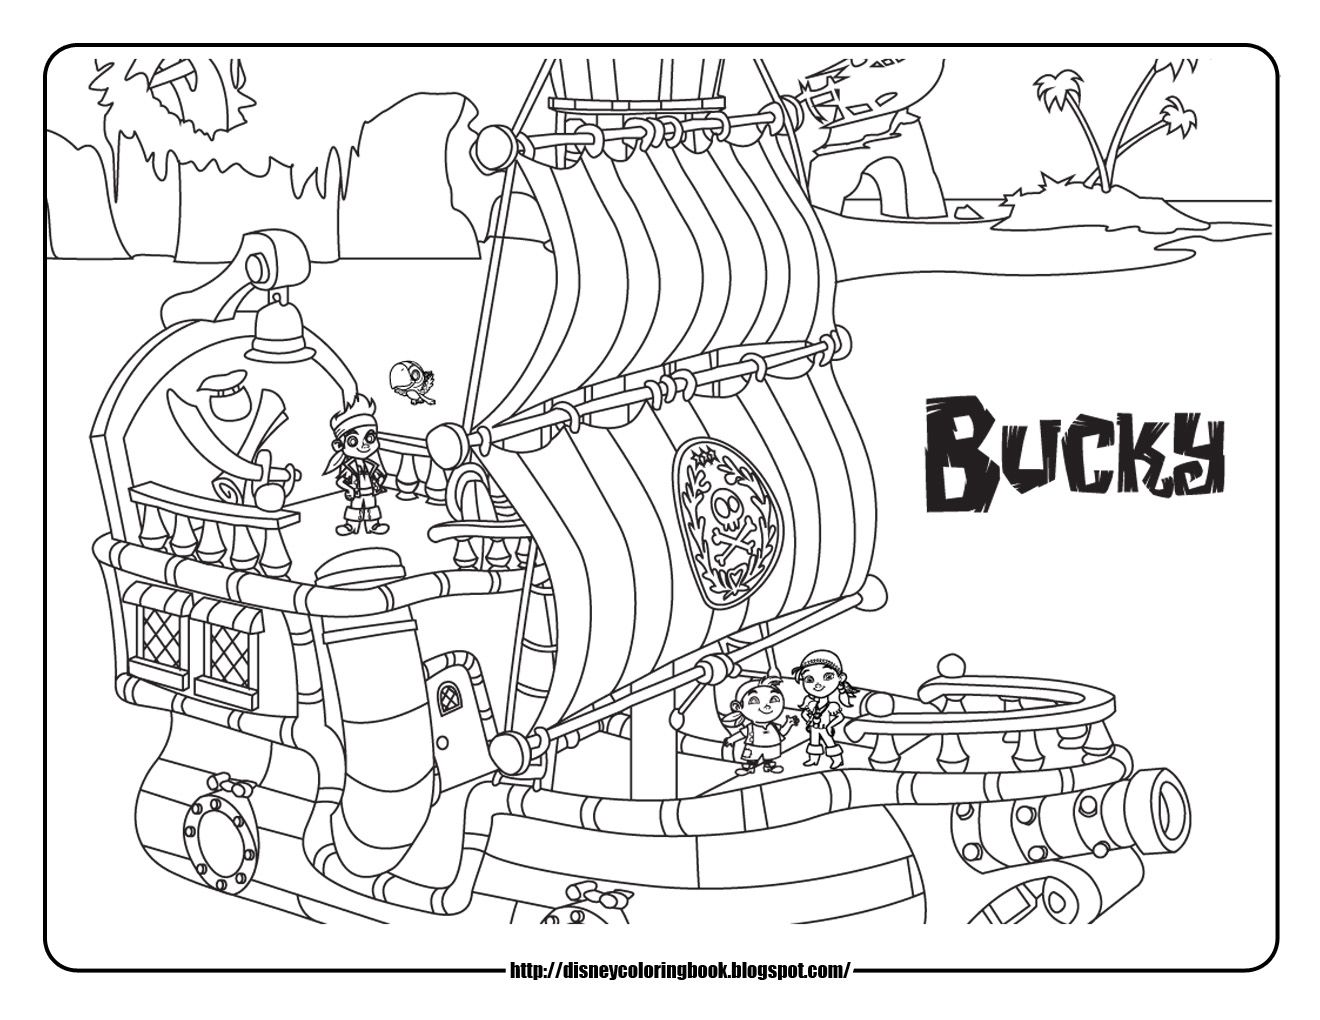 Disney Junior Coloring Pages Jake : Jake and the never land pirates pirate ship coloring pages